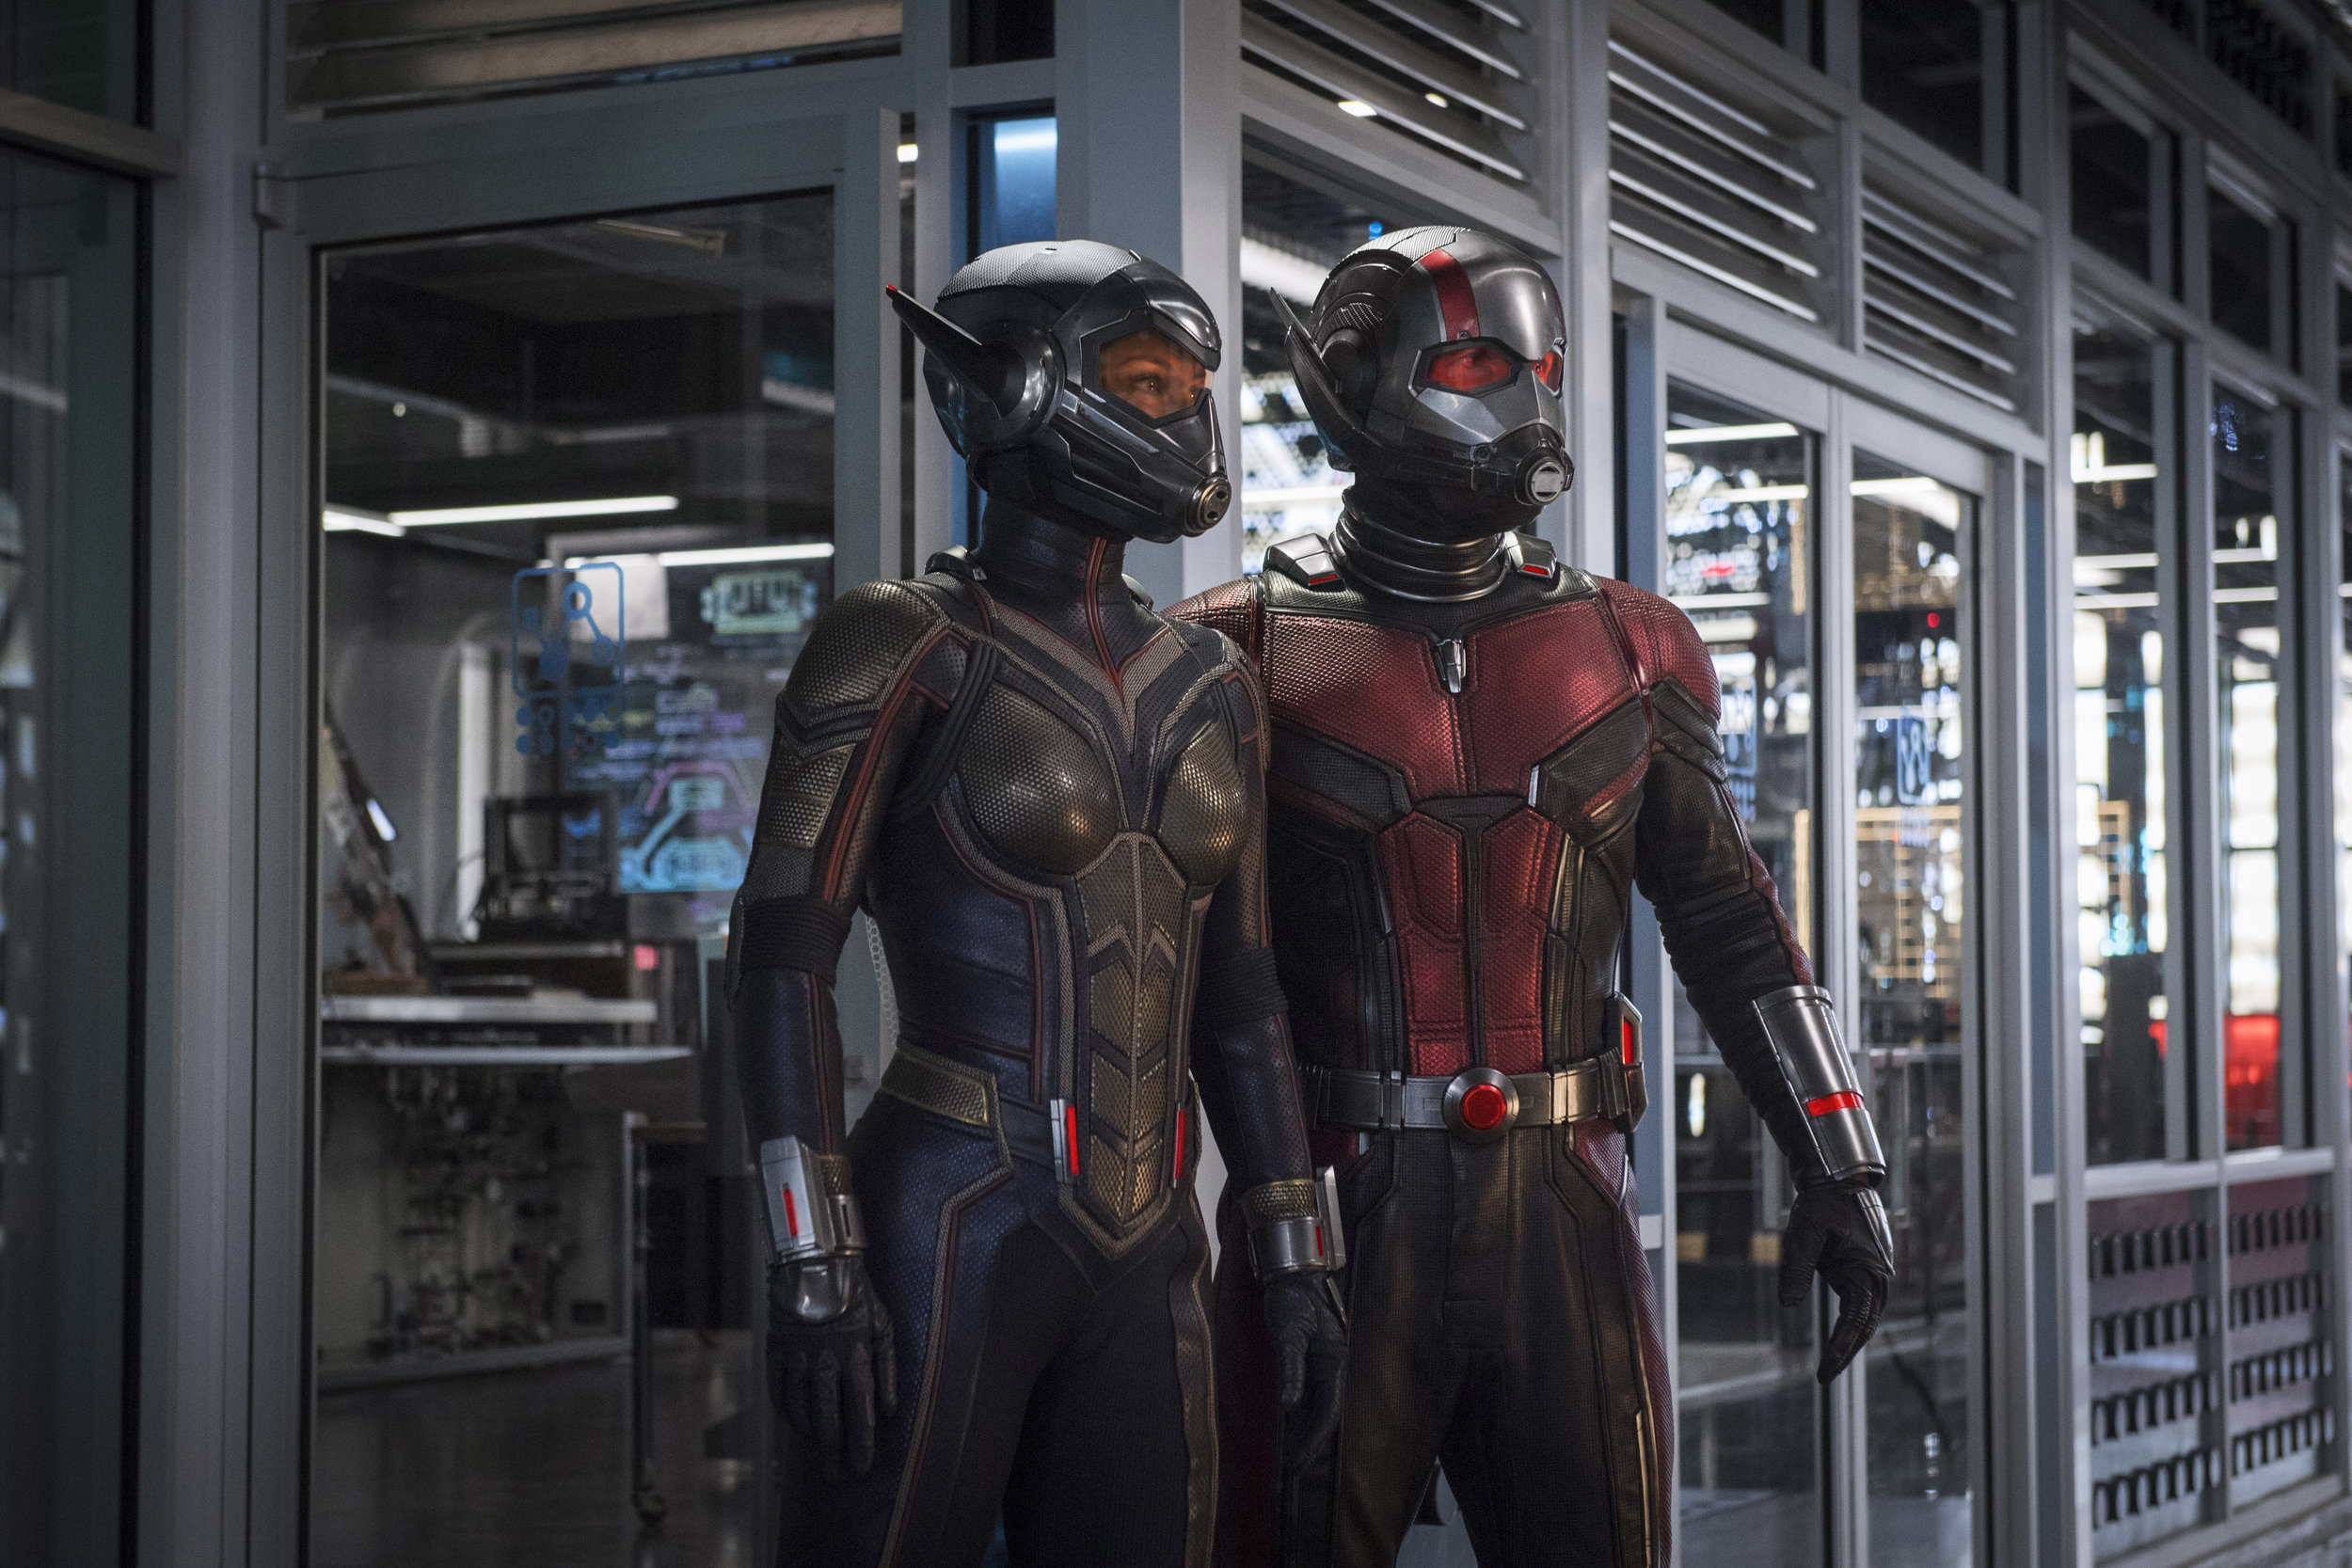 """Evangeline Lilly (left) and Paul Rudd suit up for action in Marvel's """"Ant-Man and the Wasp."""" (Photo courtesy Marvel Studios / Walt Disney Pictures)"""